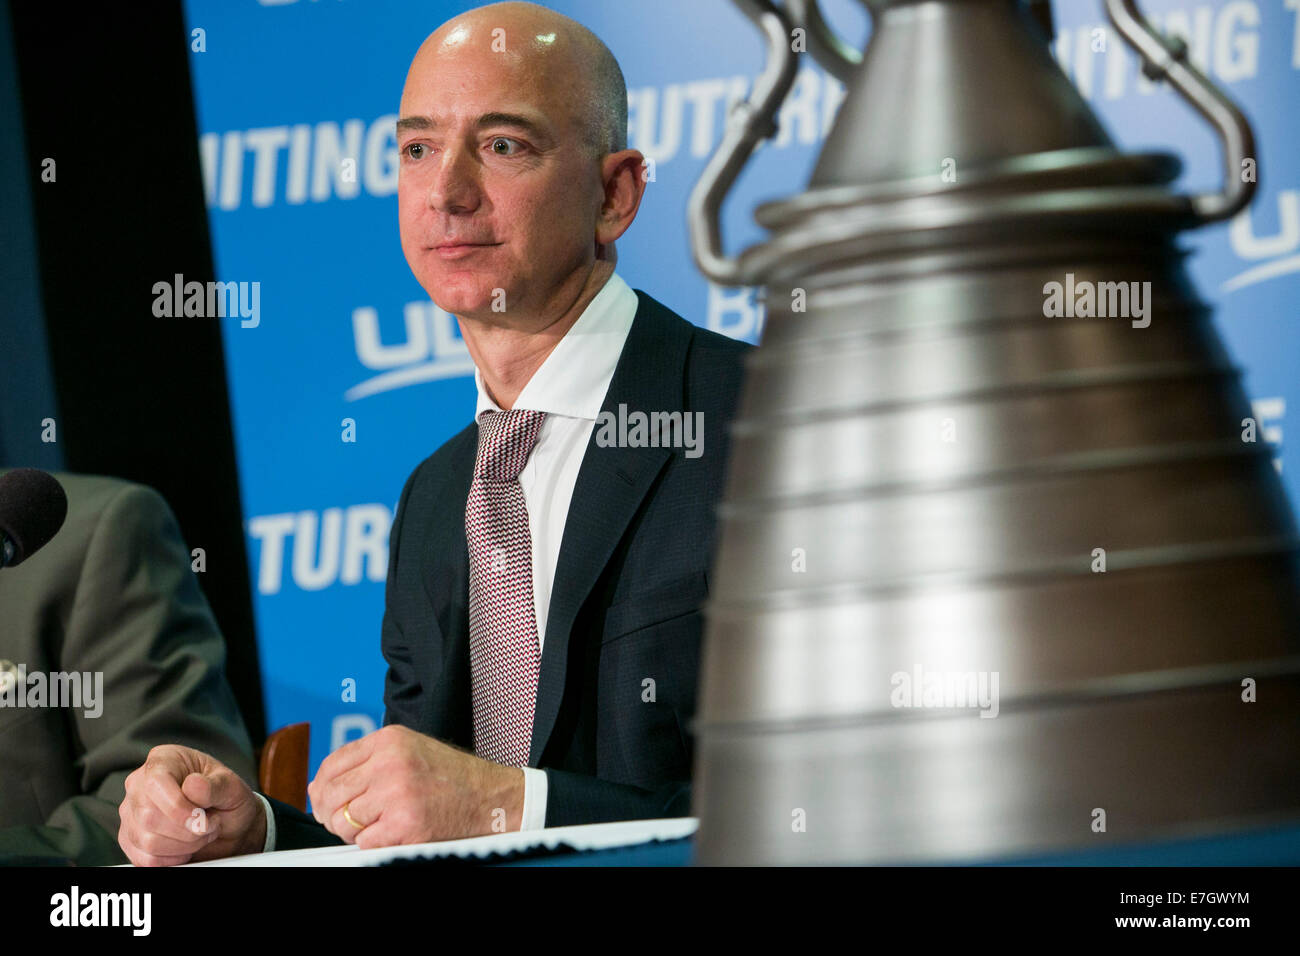 Jeff Bezos, founder of Amazon.com and Blue Origin participates in a press conference to unveil the BE-4 Rocket Engine - Stock Image